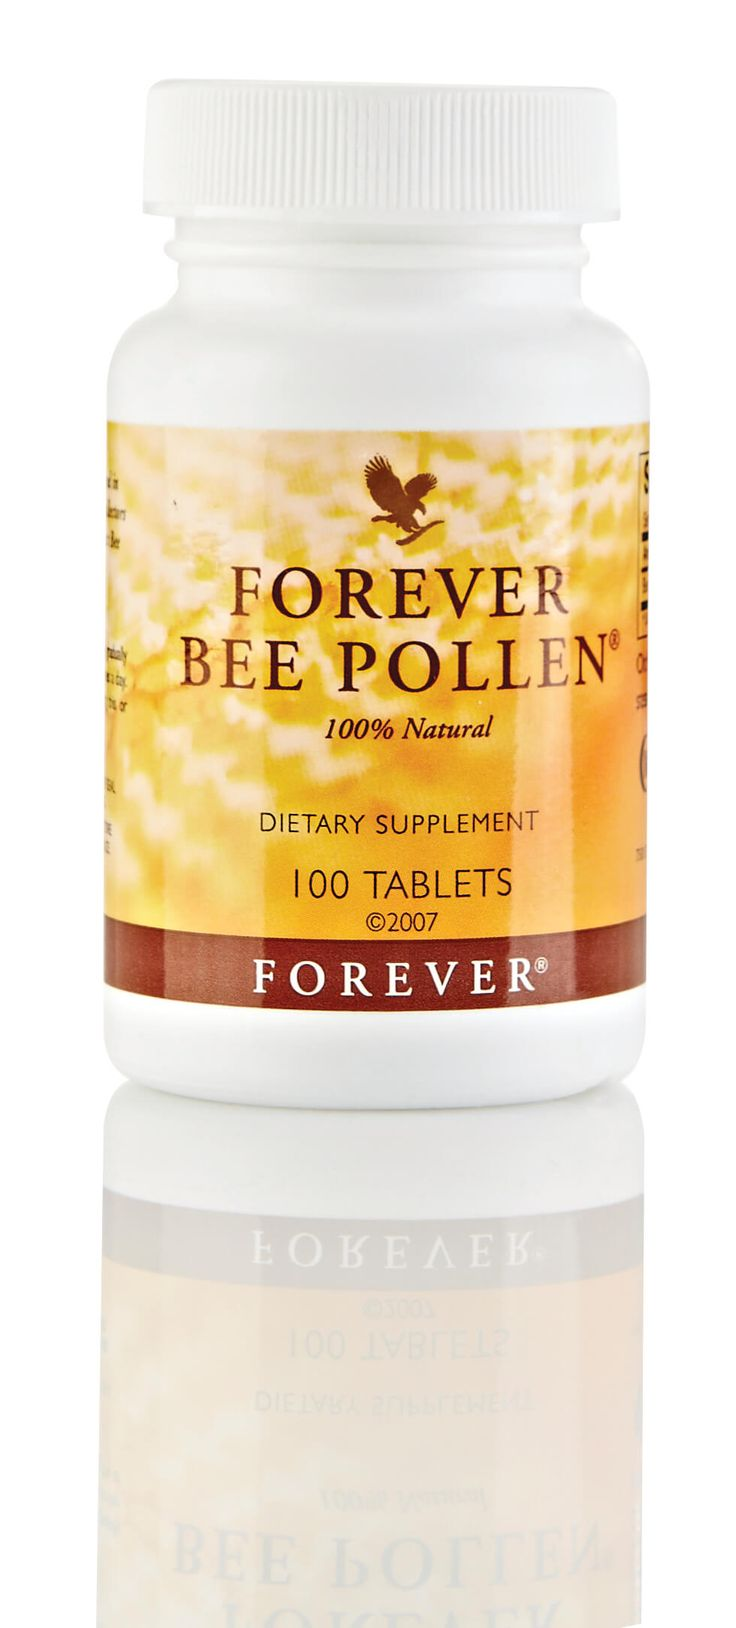 Why not test Forever Bee Pollen? It's gathered from high desert blossom trees for guaranteed freshness and potency. Try it http://link.flp.social/uVg7Tq